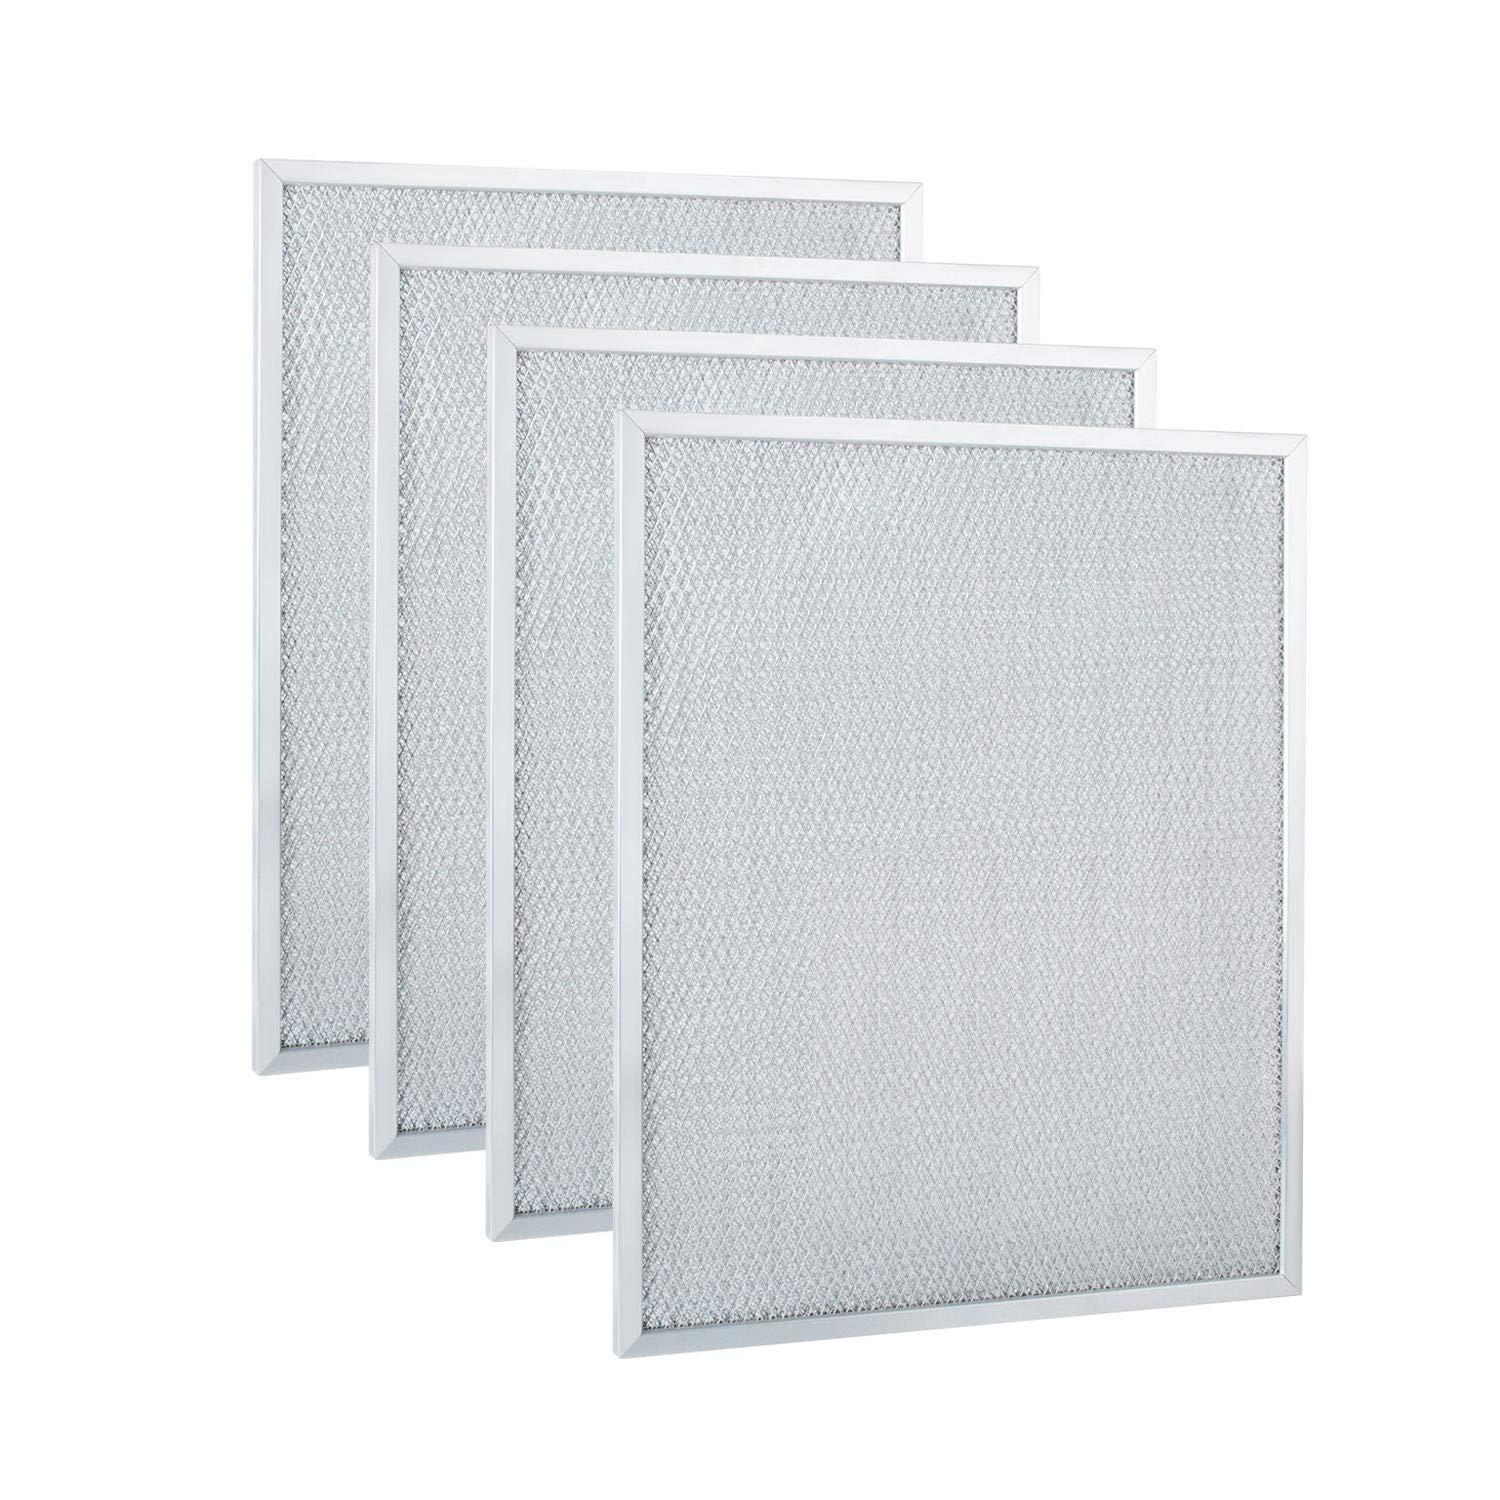 "BPS1FA30 Range Hood Filter 11-3/4"" x 14-1/4"" x 3/8"" for Broan, Nutone Compatible with 30""QS1, WS1 Aluminum Hood Grease Replacement Filter (4 Pack)"